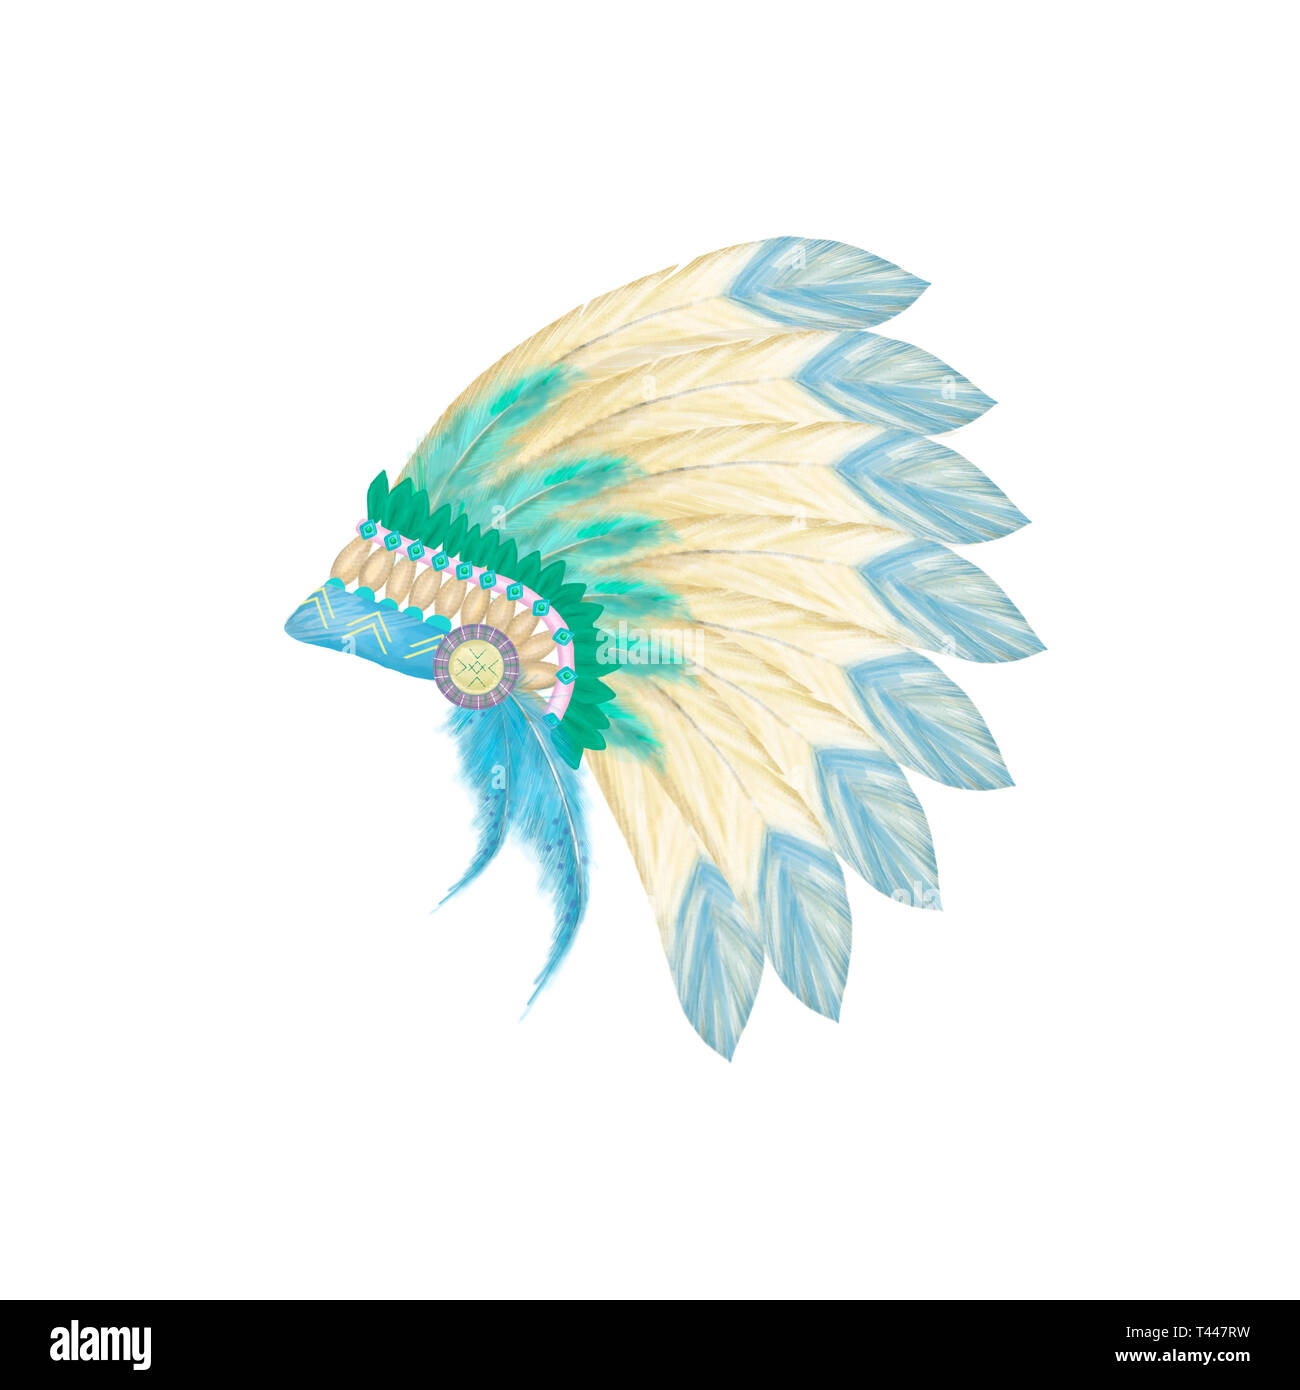 Headdress indian hat digital clip art illustration - Stock Image